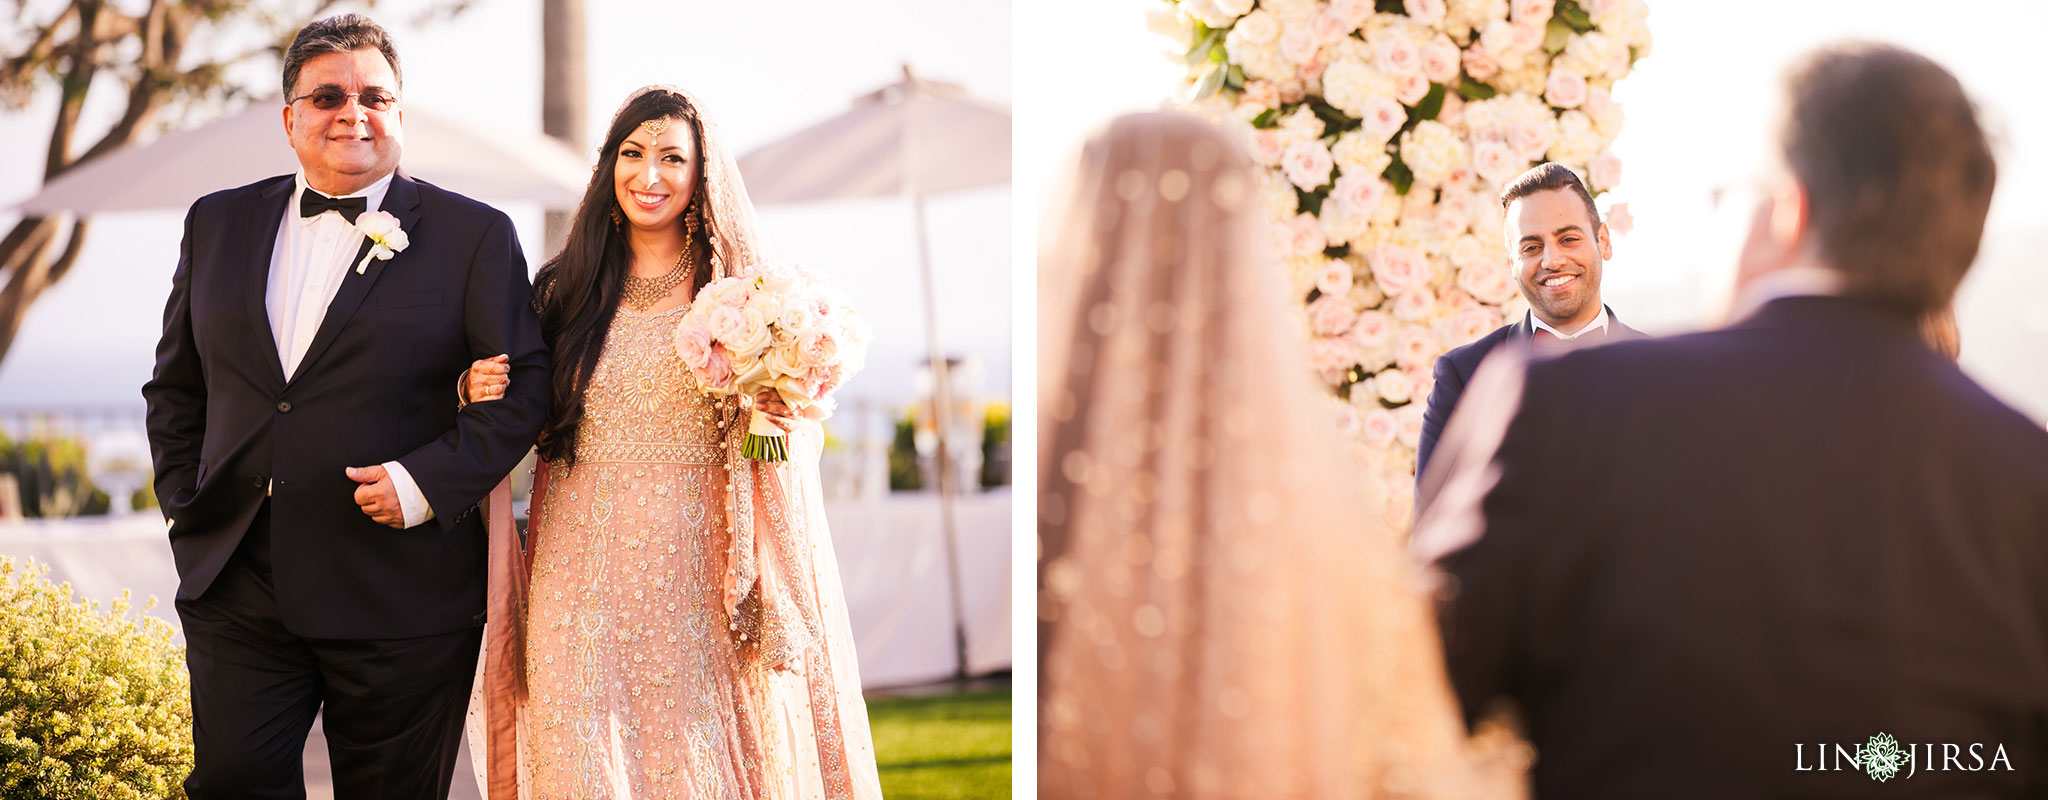 018 ritz carlton laguna niguel south asian wedding ceremony photography